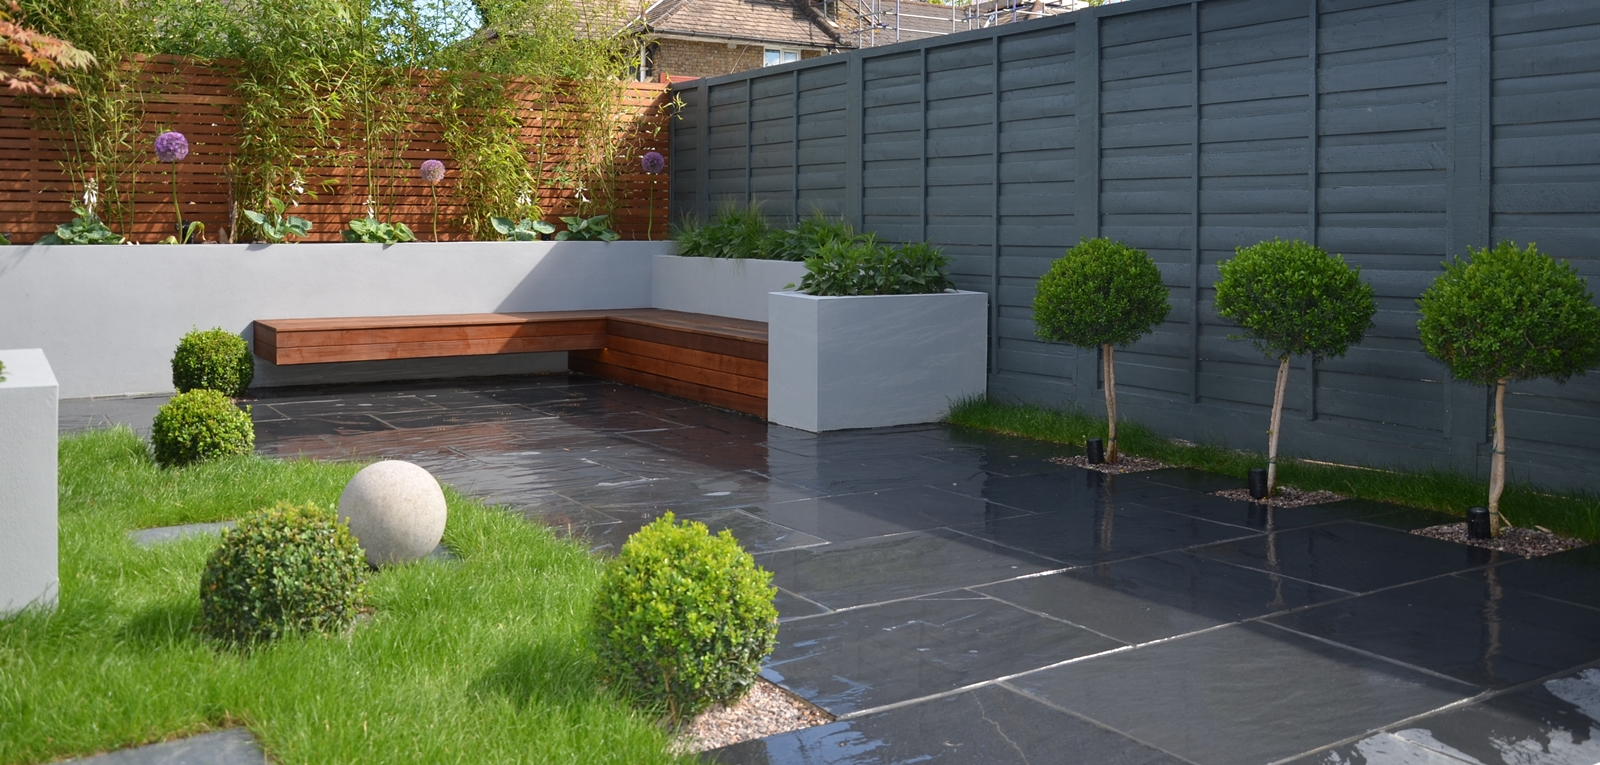 Landscaping london garden design for Garden design 2015